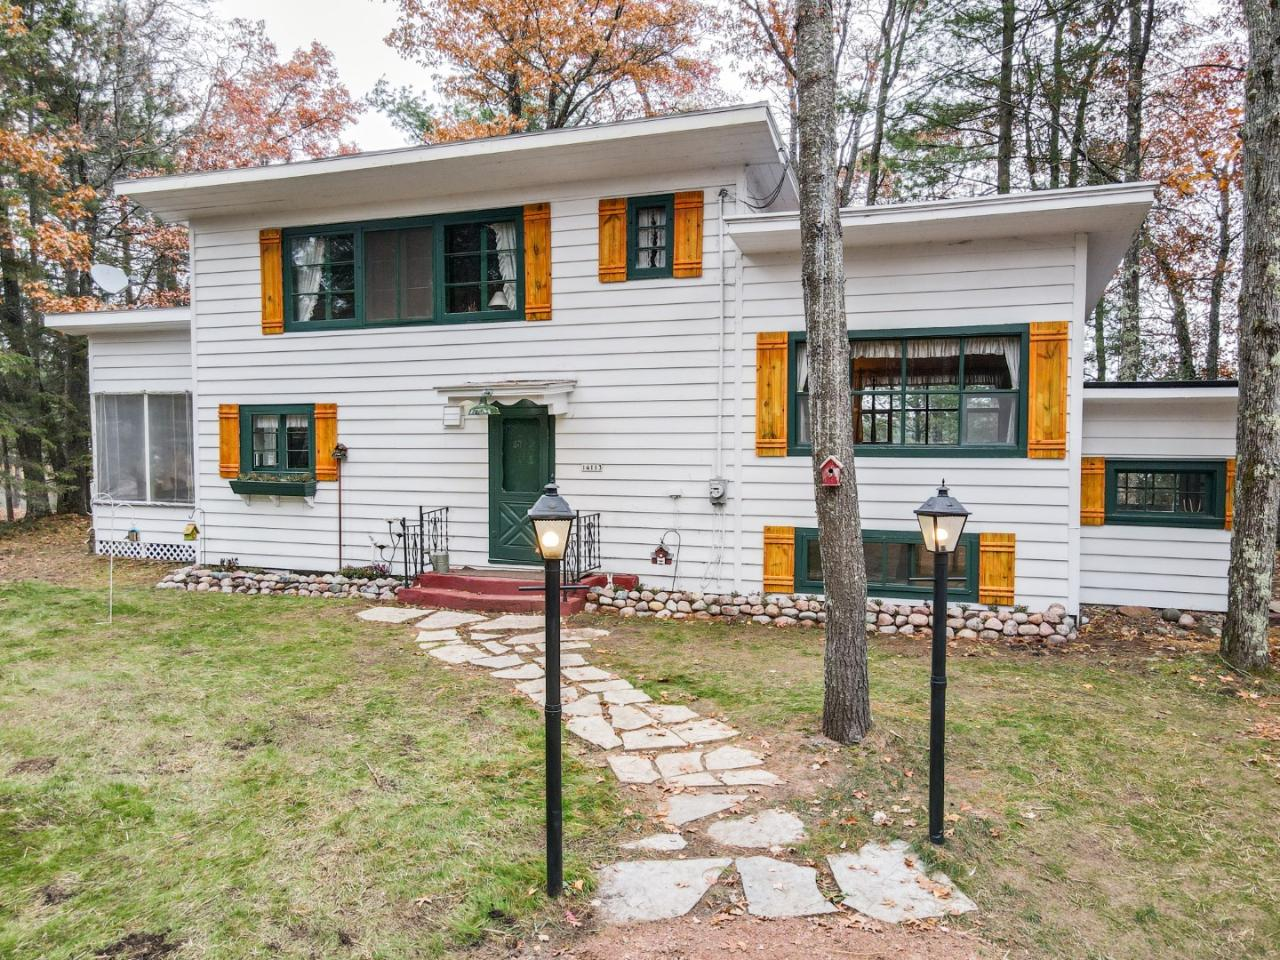 Northwoods Elegance. This historic Northwoods charmer has yesteryear character with modern day amenities. This park-like setting offers crystal clear water and sand frontage. The big water views include islands, peninsulas and mostly undeveloped shore lines. The property supports towering pines and mature oaks with a new circle drive and a three-car garage. The great room features 20ft ceilings, lots of glass and a field stone fireplace. The walls are finished with a knotty pine golden glow and towering French doors leading to the oversized screened porch. A true gem with priceless views. Complete this package with 3 spacious bedrooms and a full basement. Located on the sought-after Crawling Stone Lake on the Fence Lake Chain of Lakes. Charm and location like this won't last long.